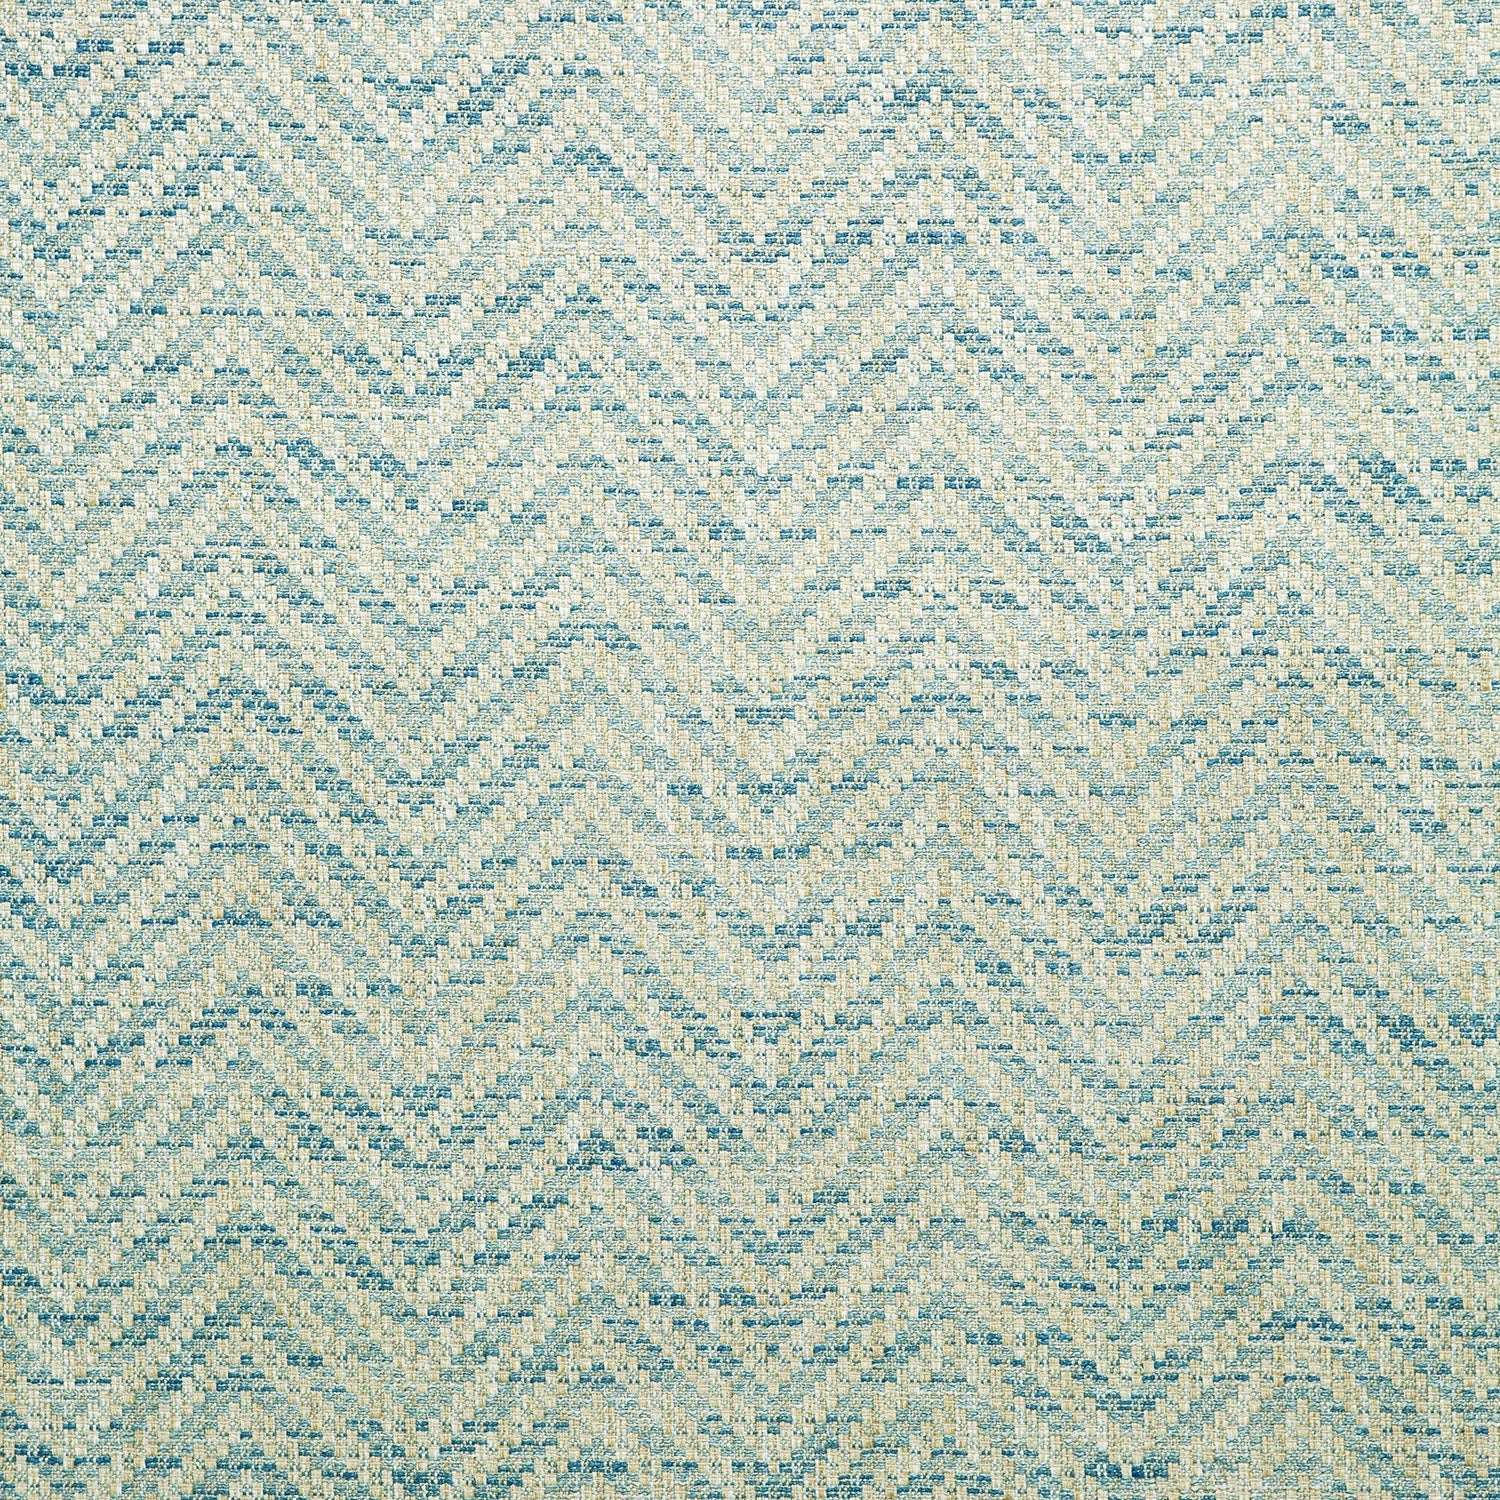 Fabric swatch of a light blue herringbone weave fabric for curtains and upholstery